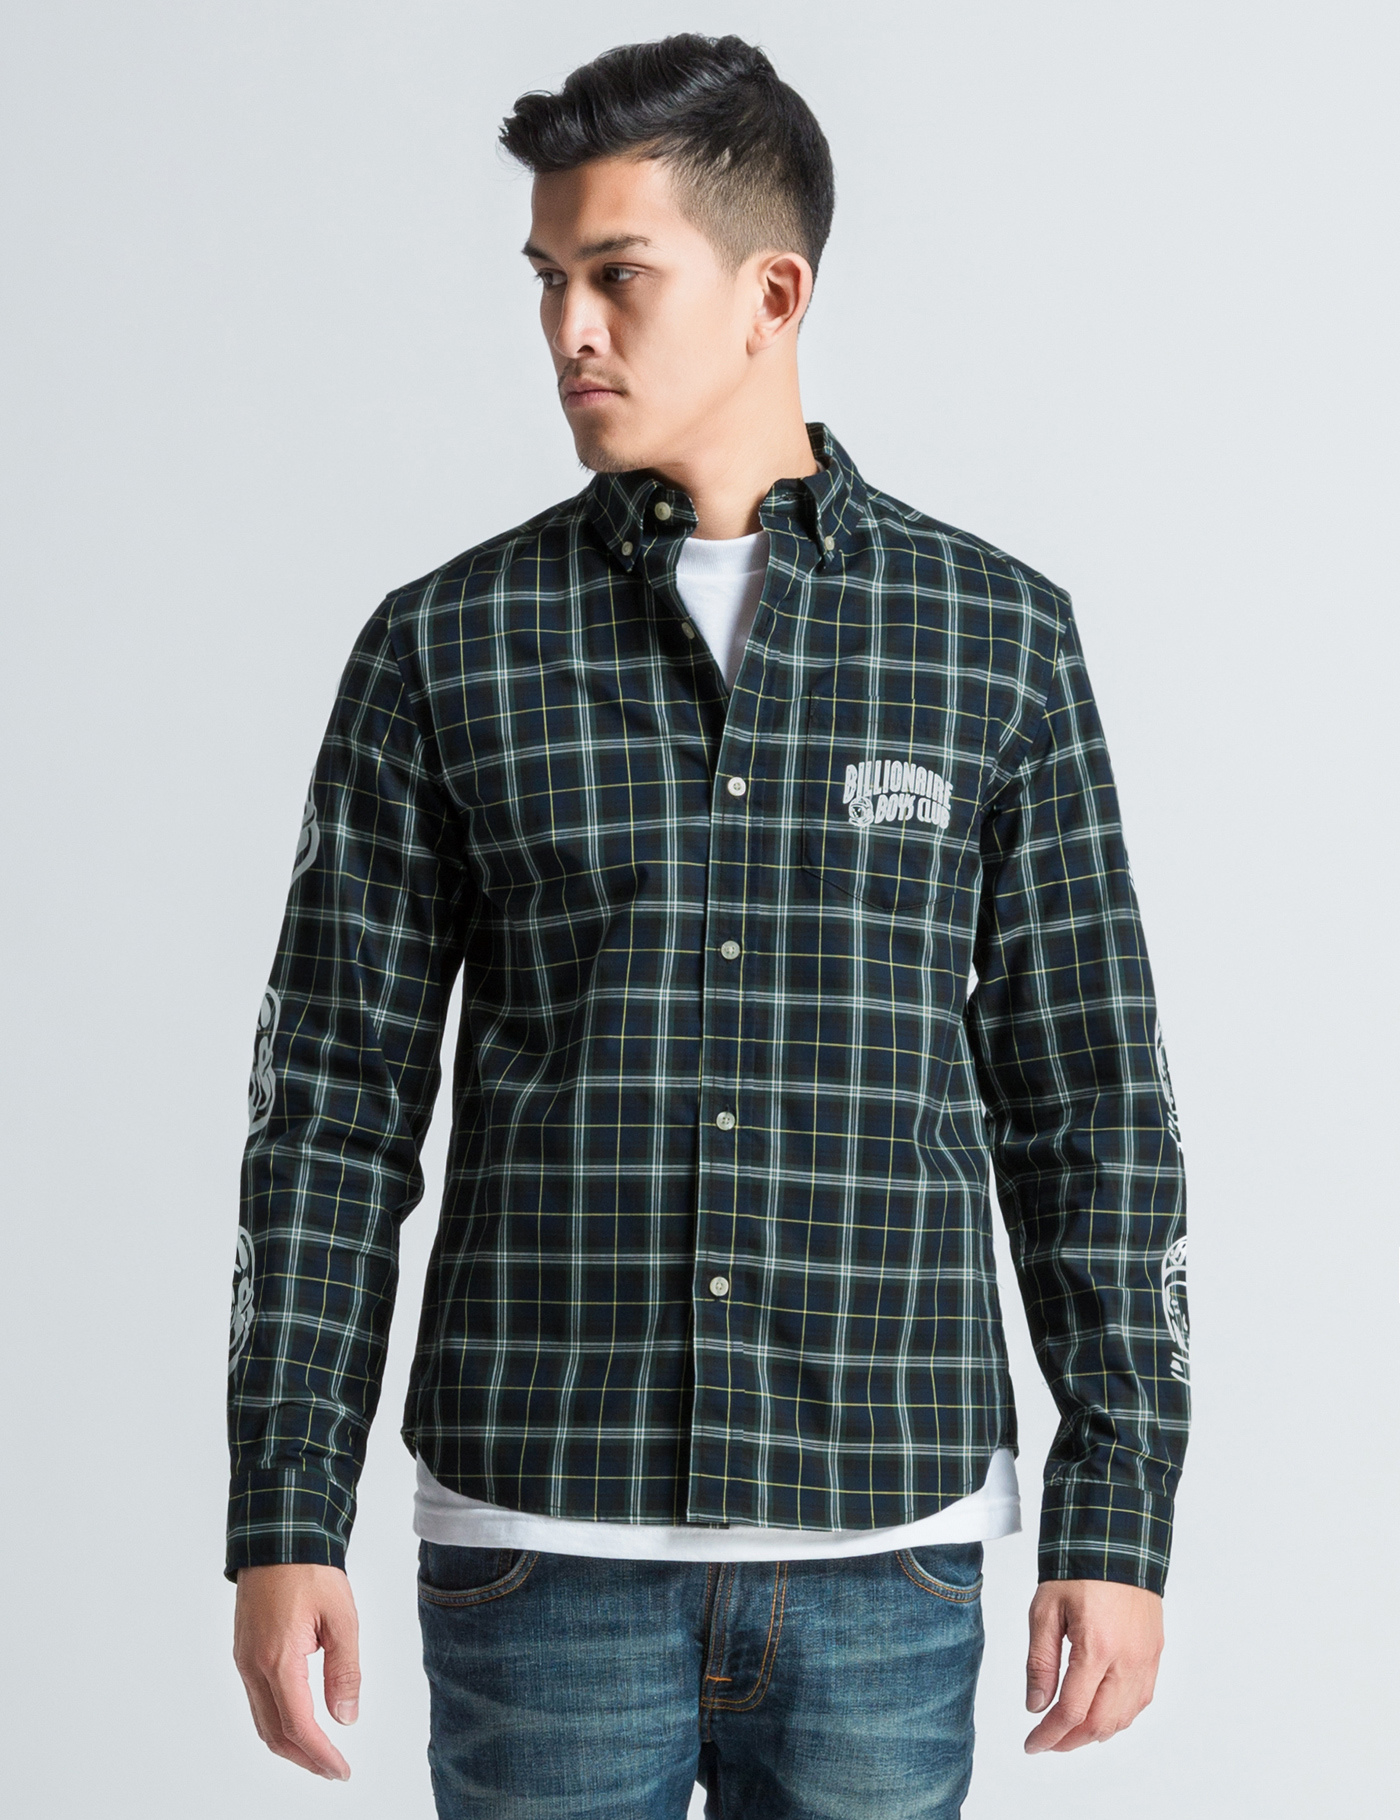 Billionaire Boys Club Ice Cream Green Plaid Button Down